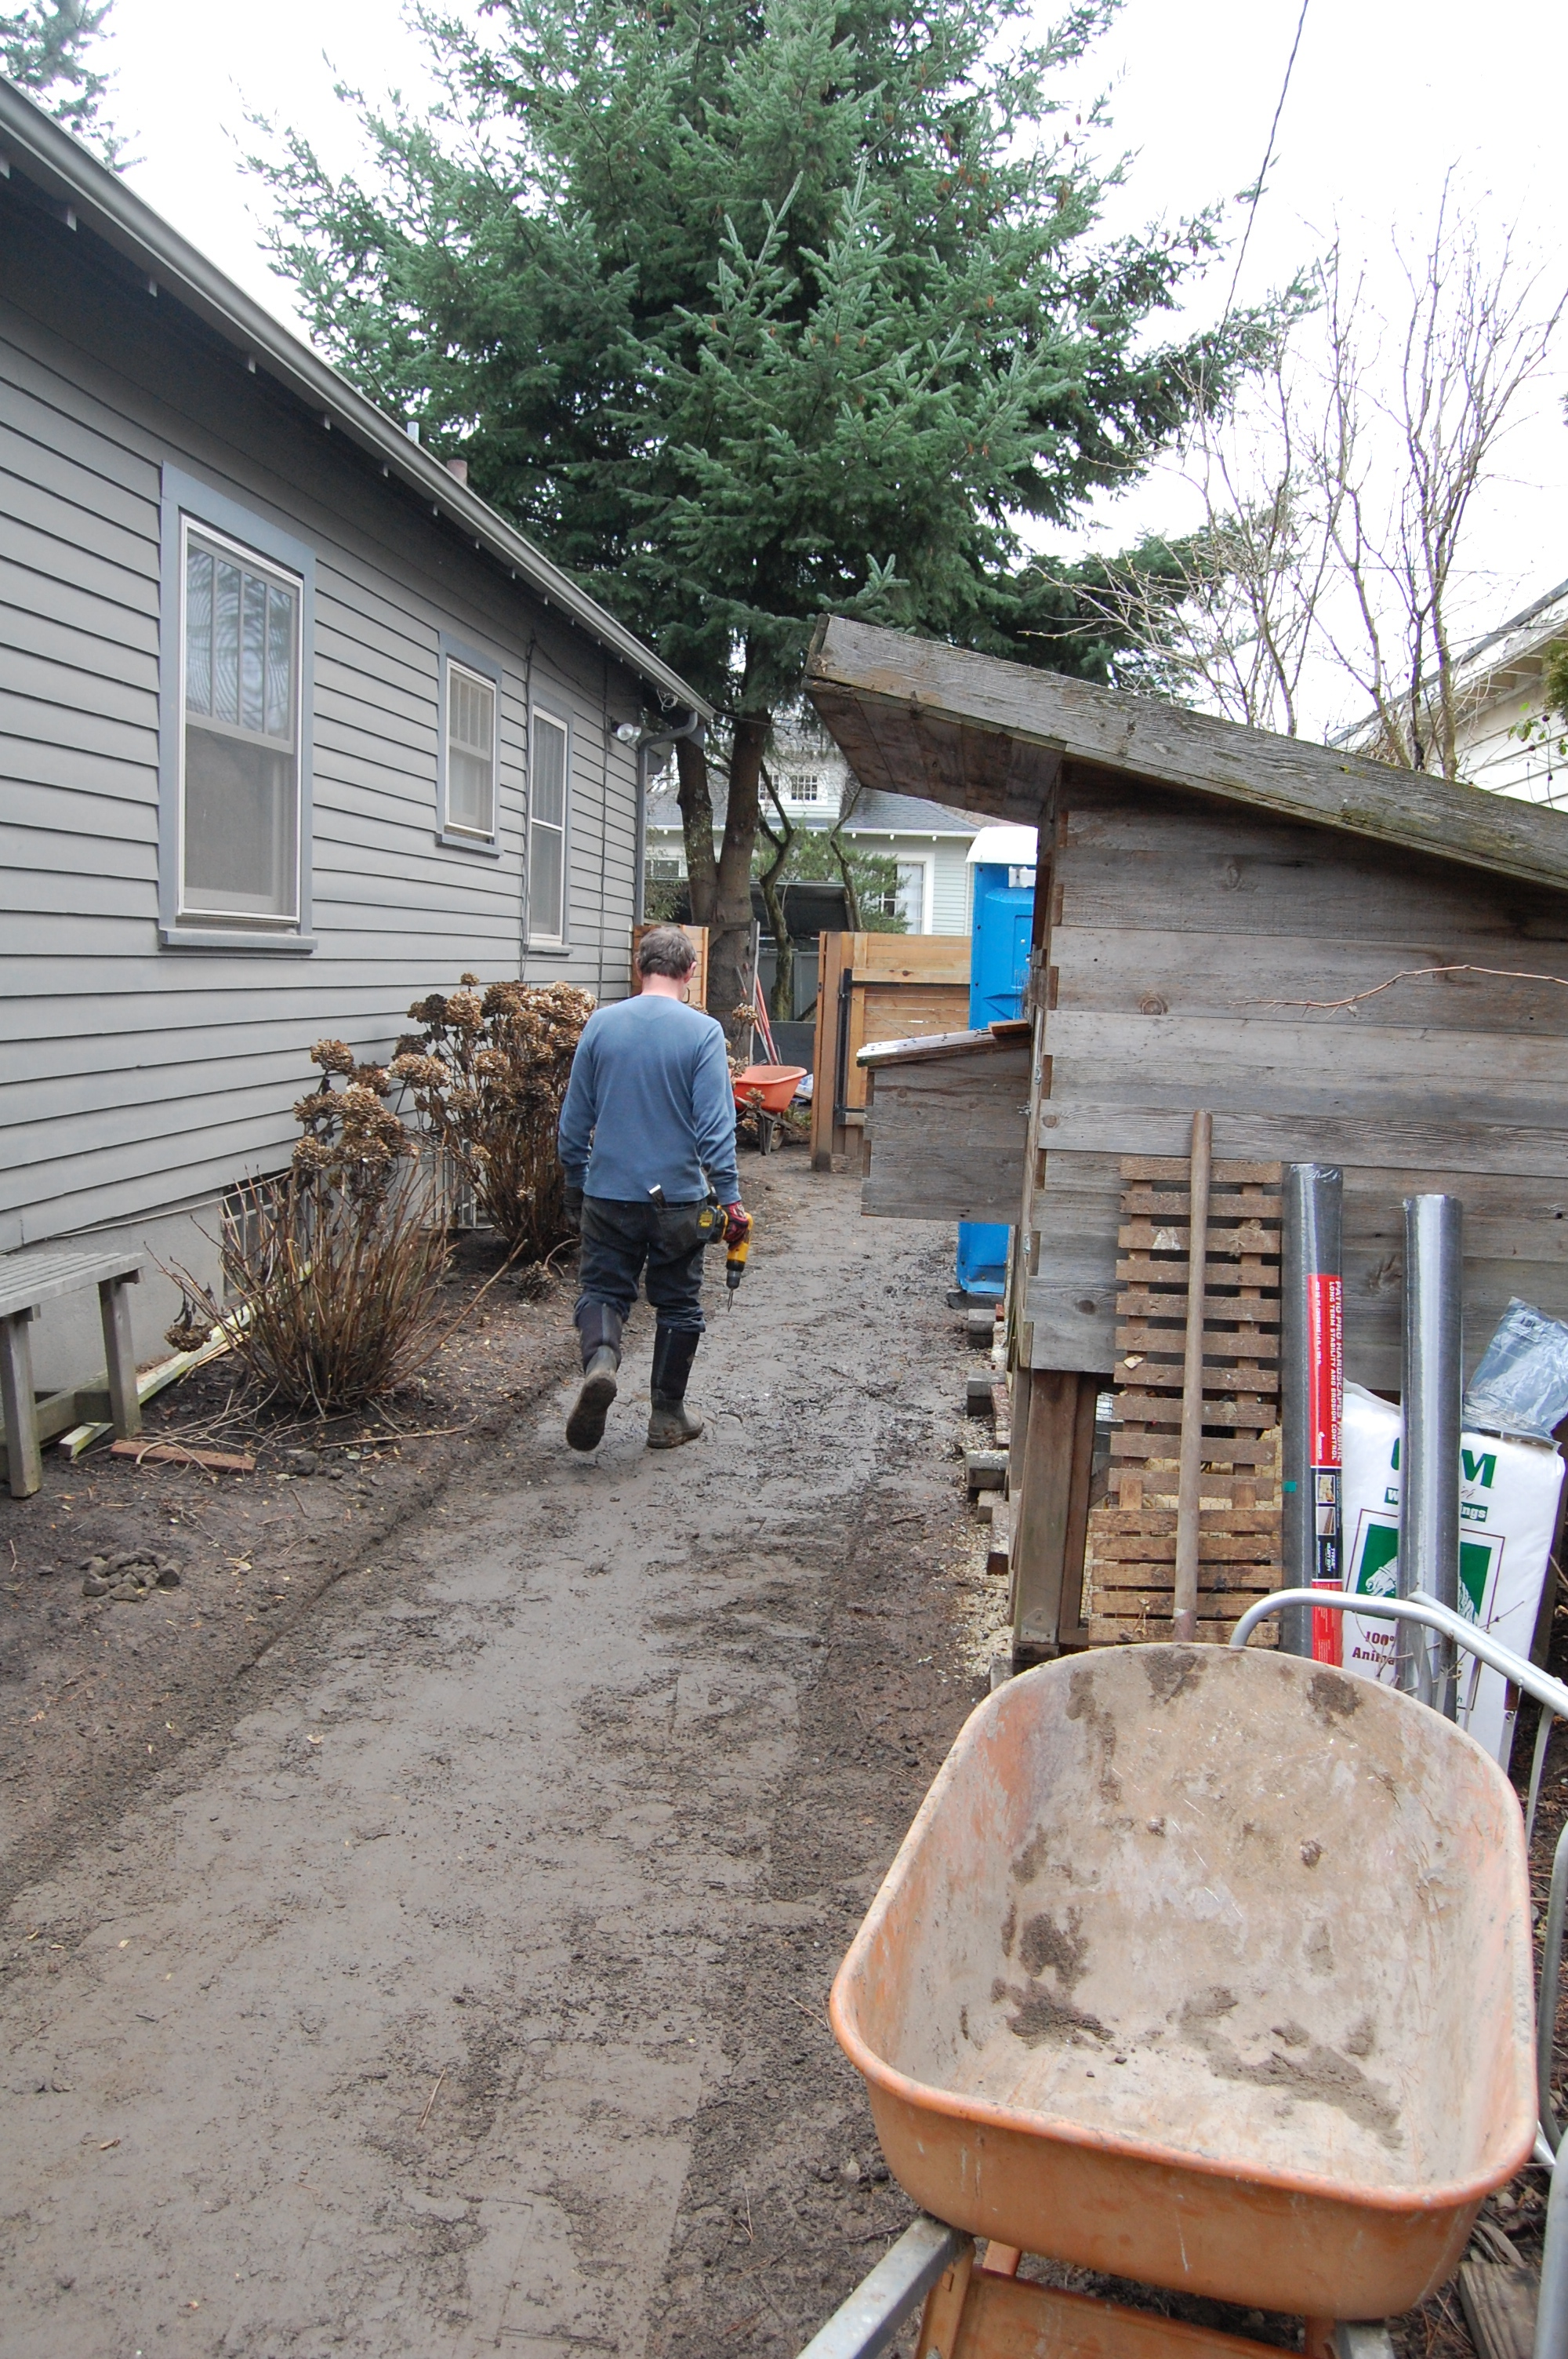 2013-2015: The walkway was muddy in the winter and originally home to the chicken coop. We wanted to create an experiential journey to the ADU to compliment the feeling of arriving at an oasis. Today, the coop is located elsewhere on the property. Changes in lifestyle contributed to the redesign.